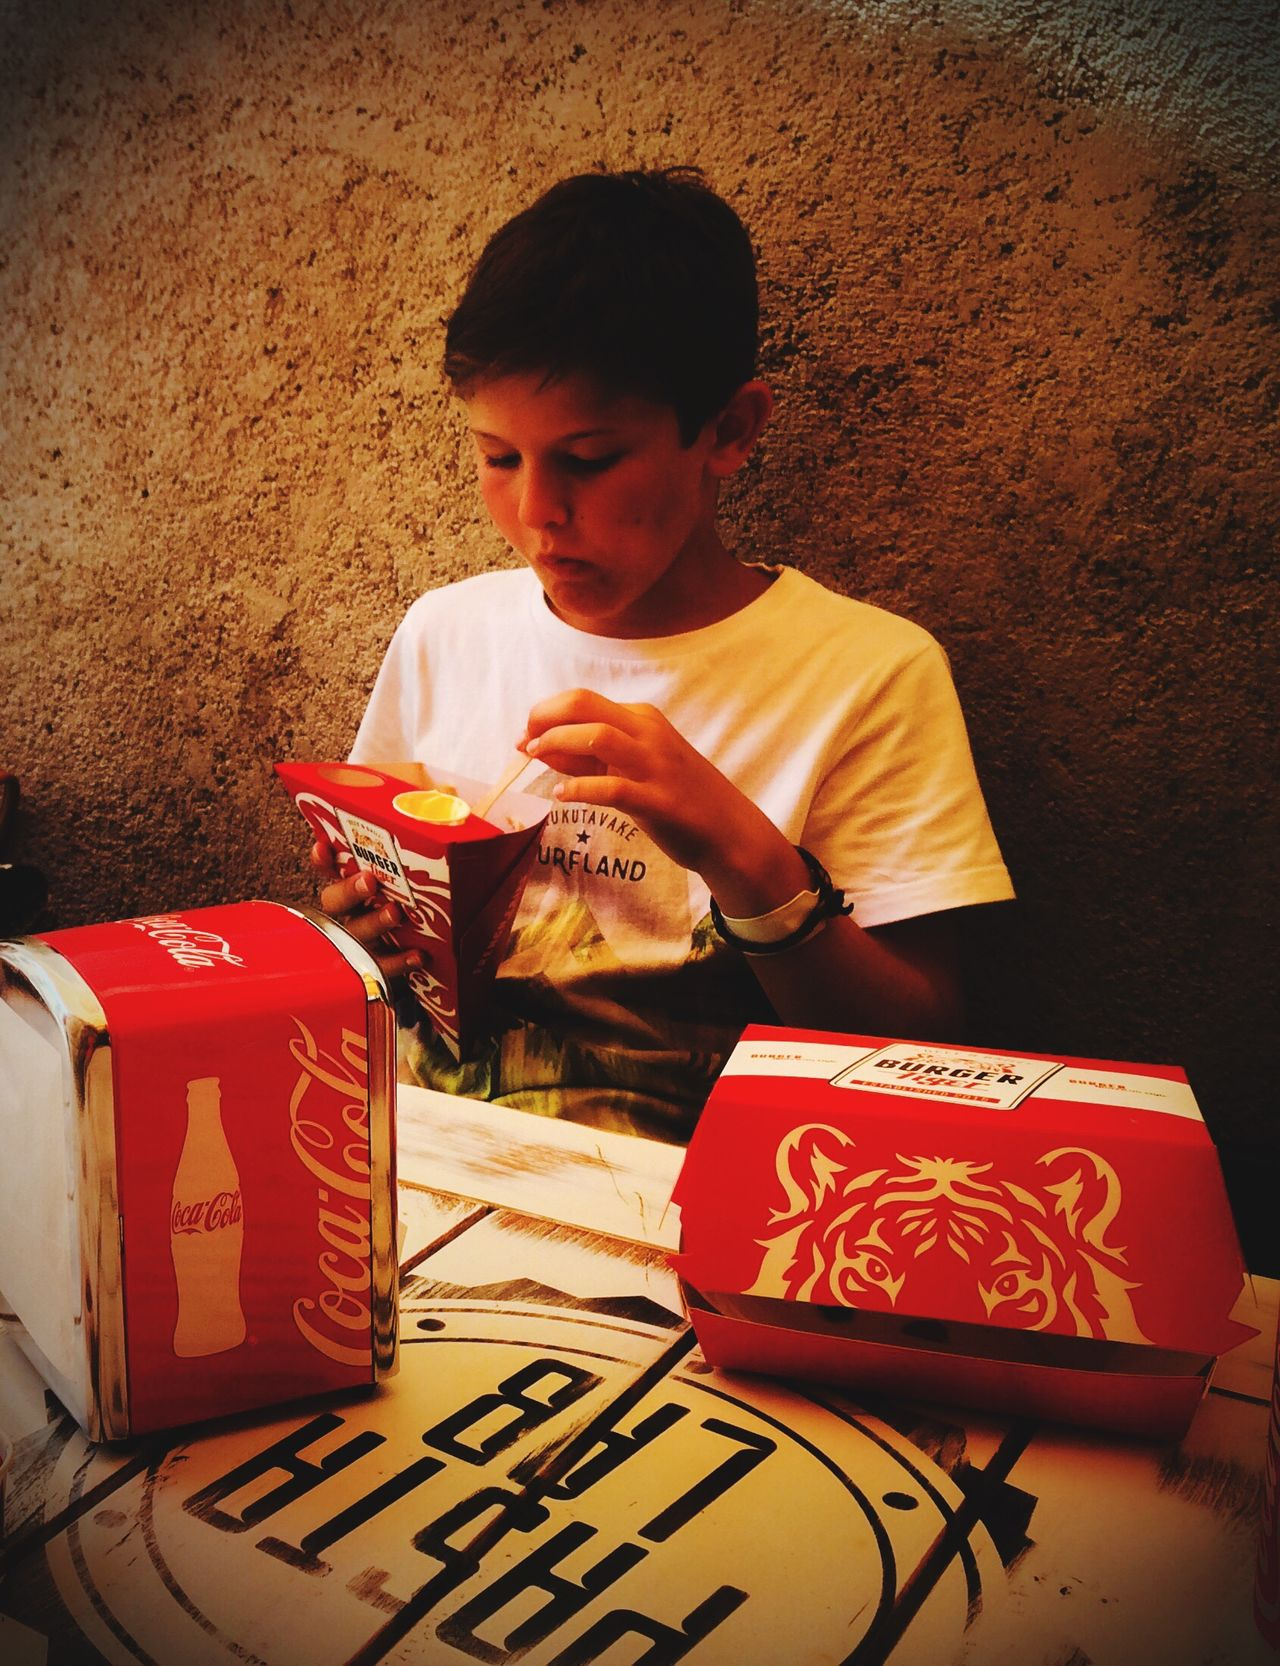 Street food Eat Food Boxes Fast Eating Kid Eating Red Box